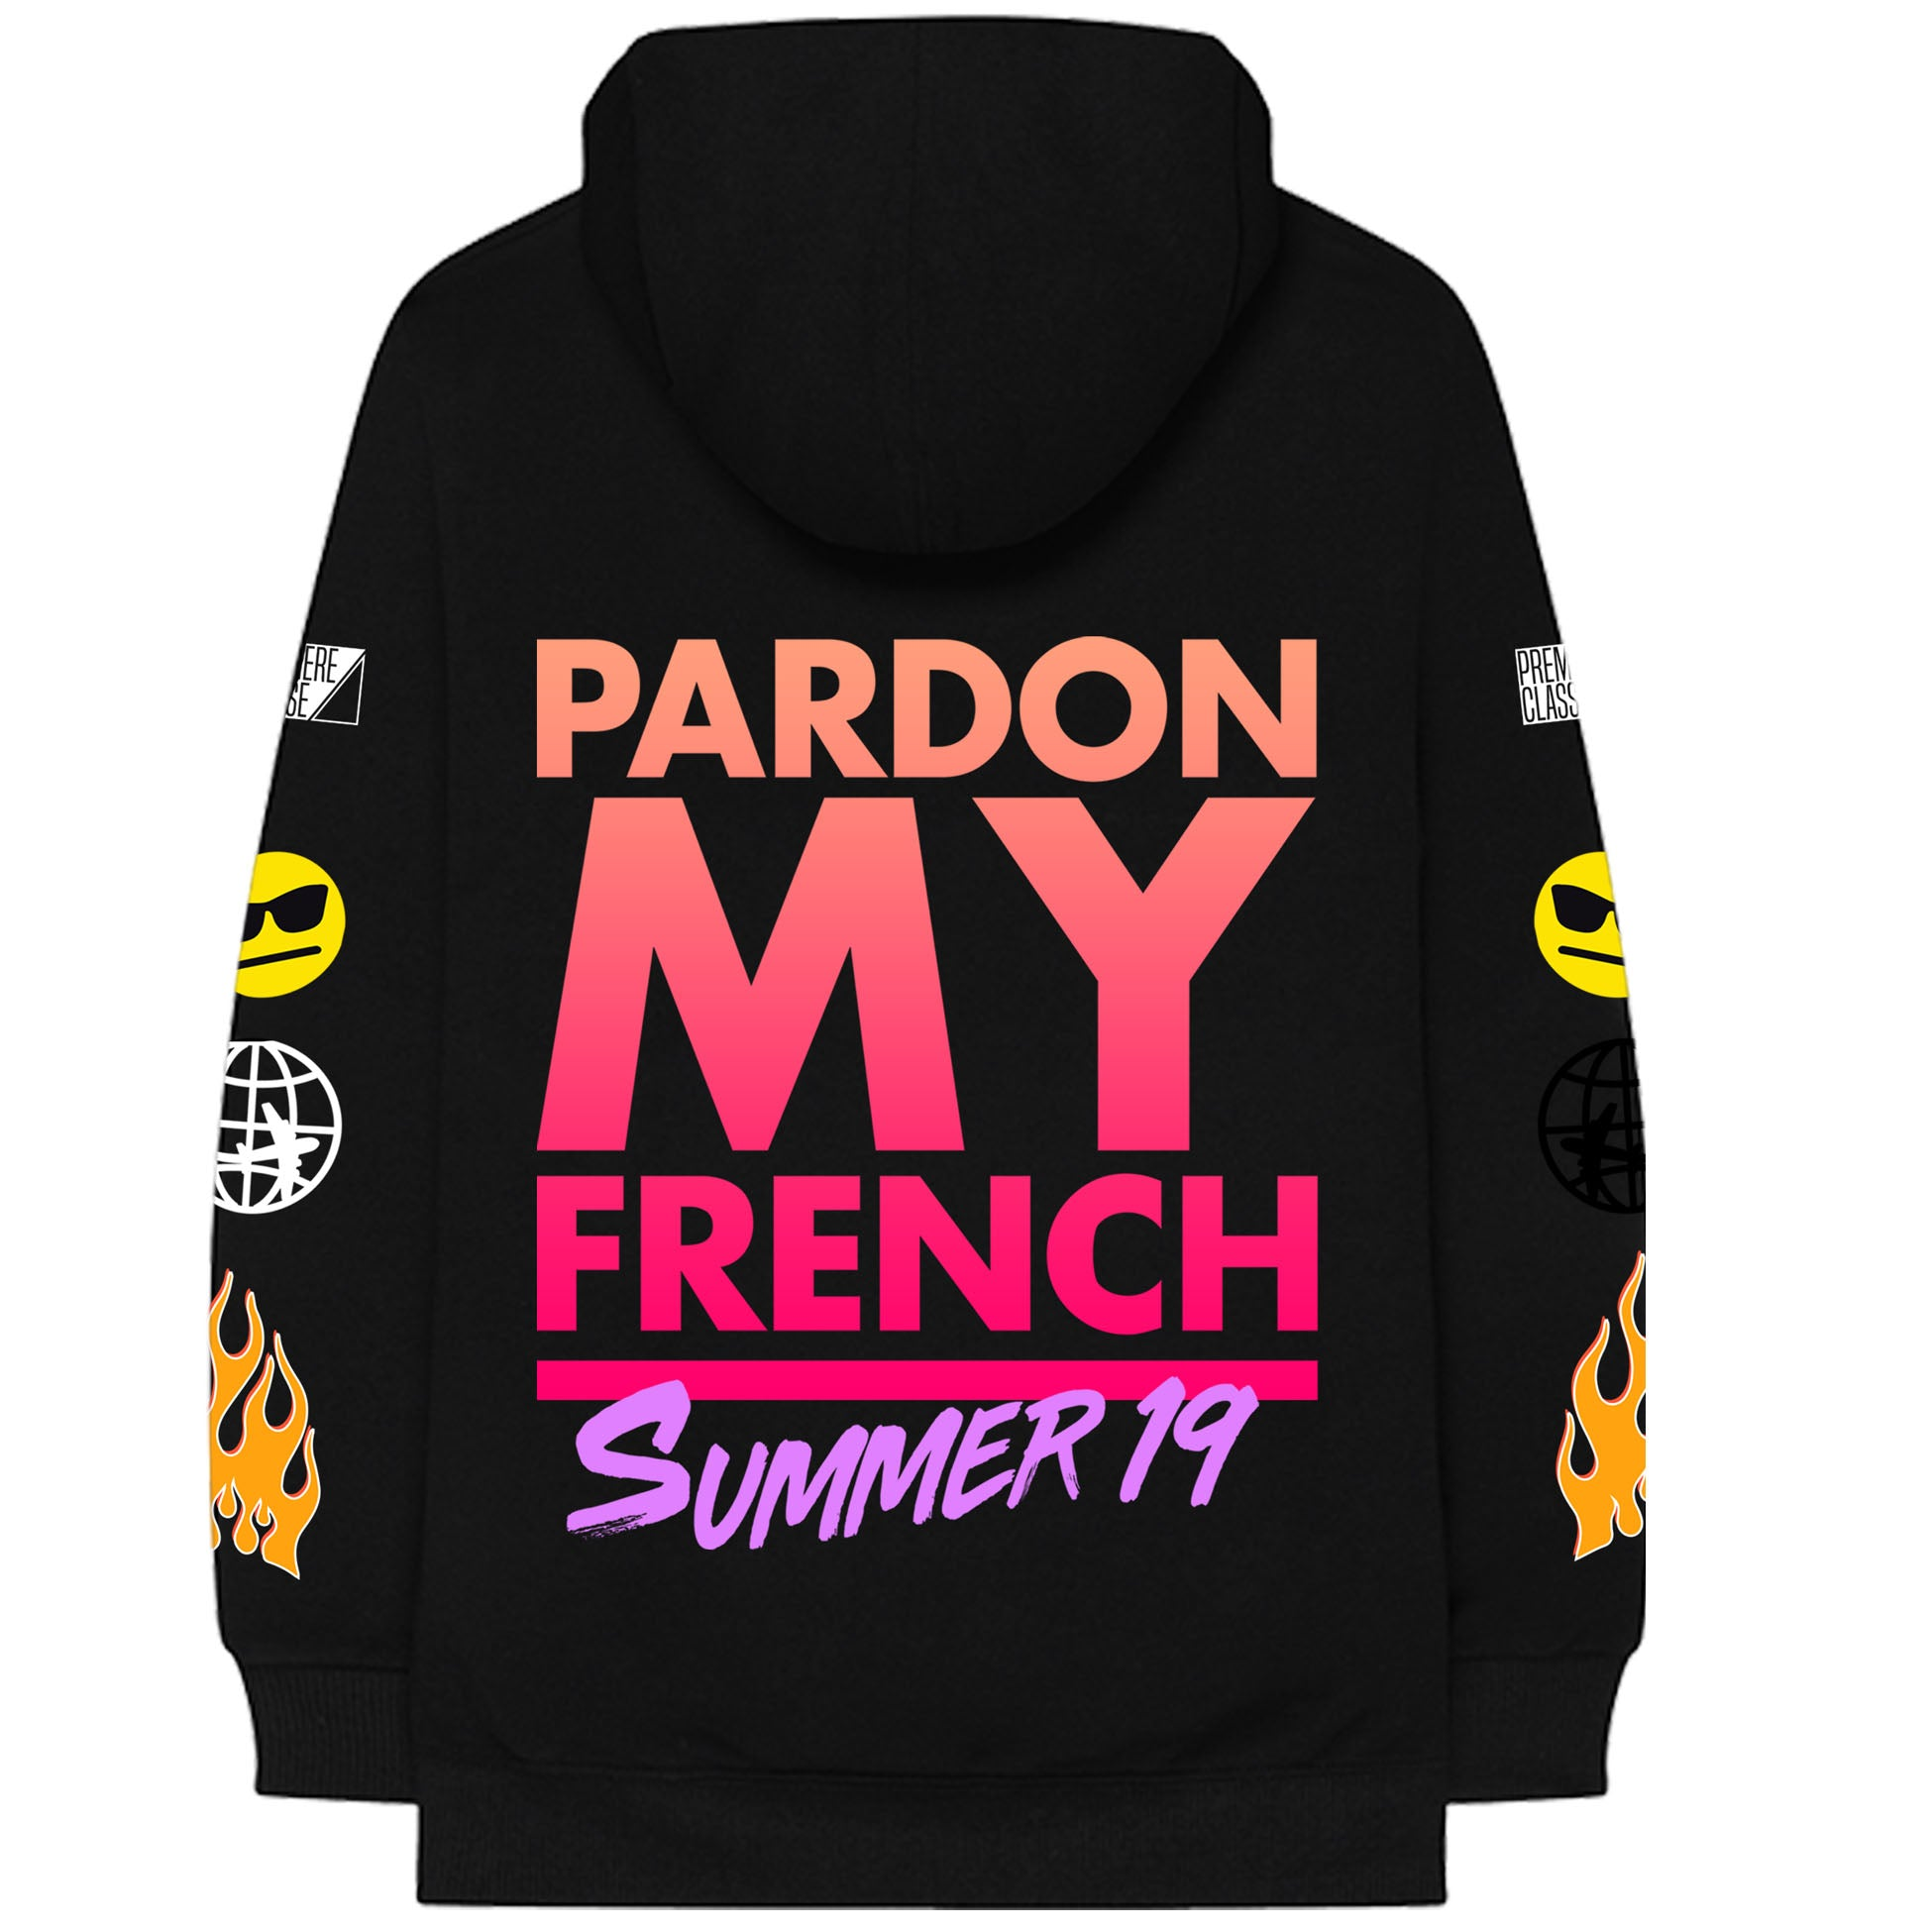 PARDON MY FRENCH SUMMER 19 BLACK HOODIE